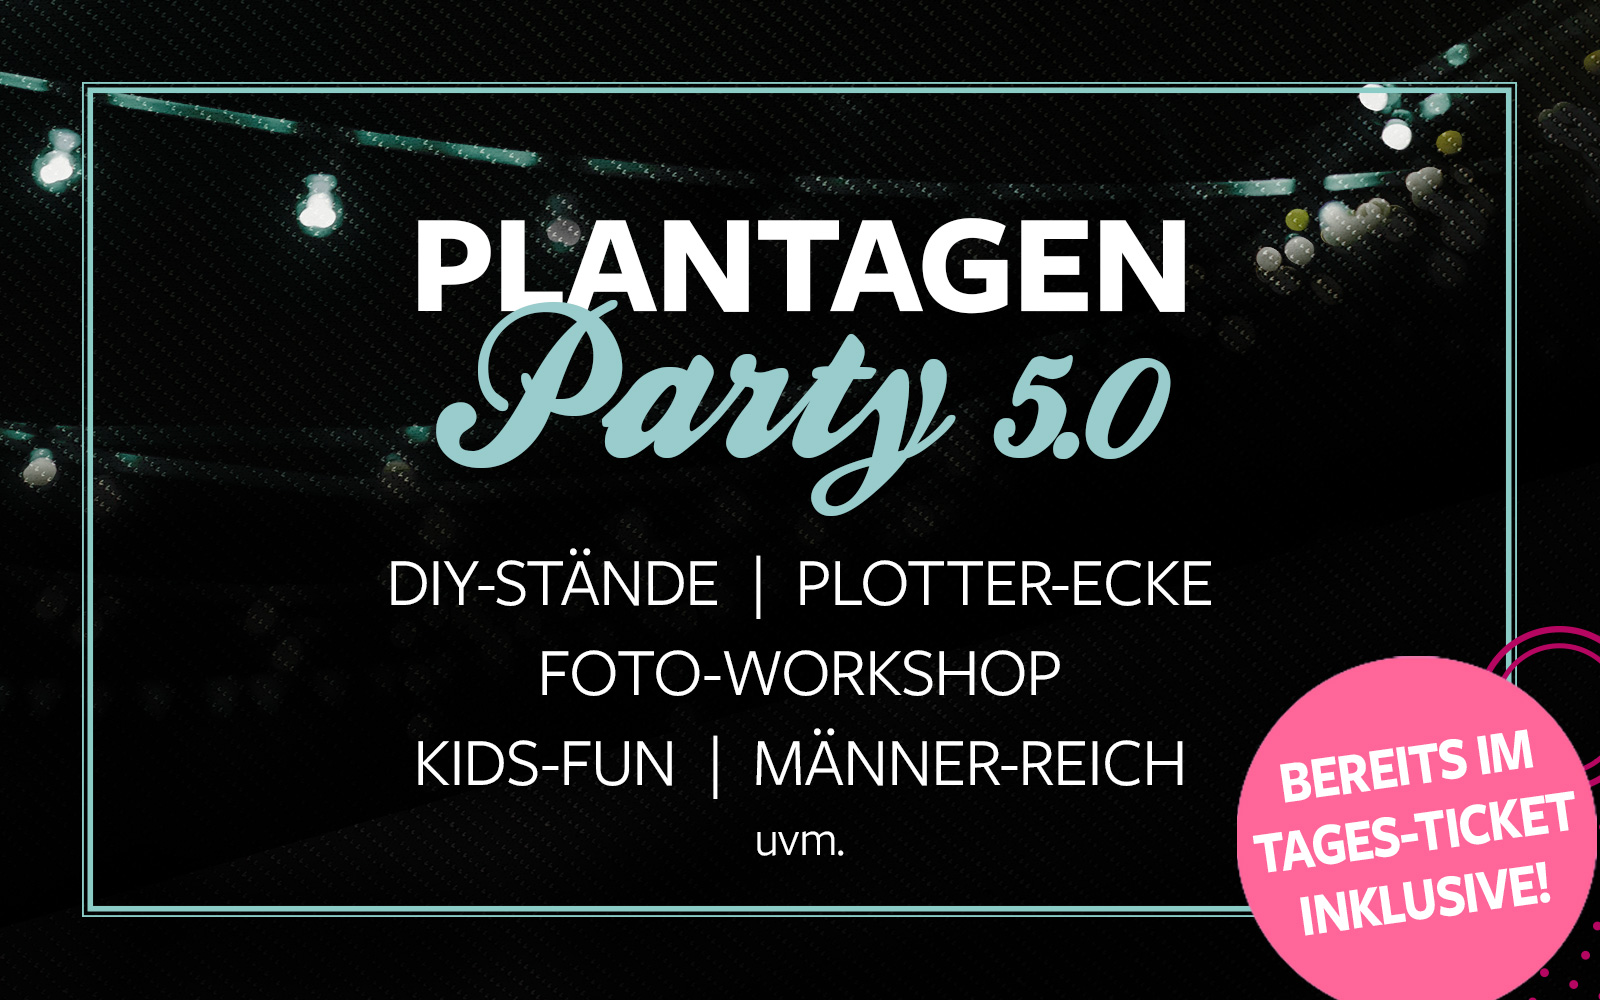 Plantagenparty - All inklusive!